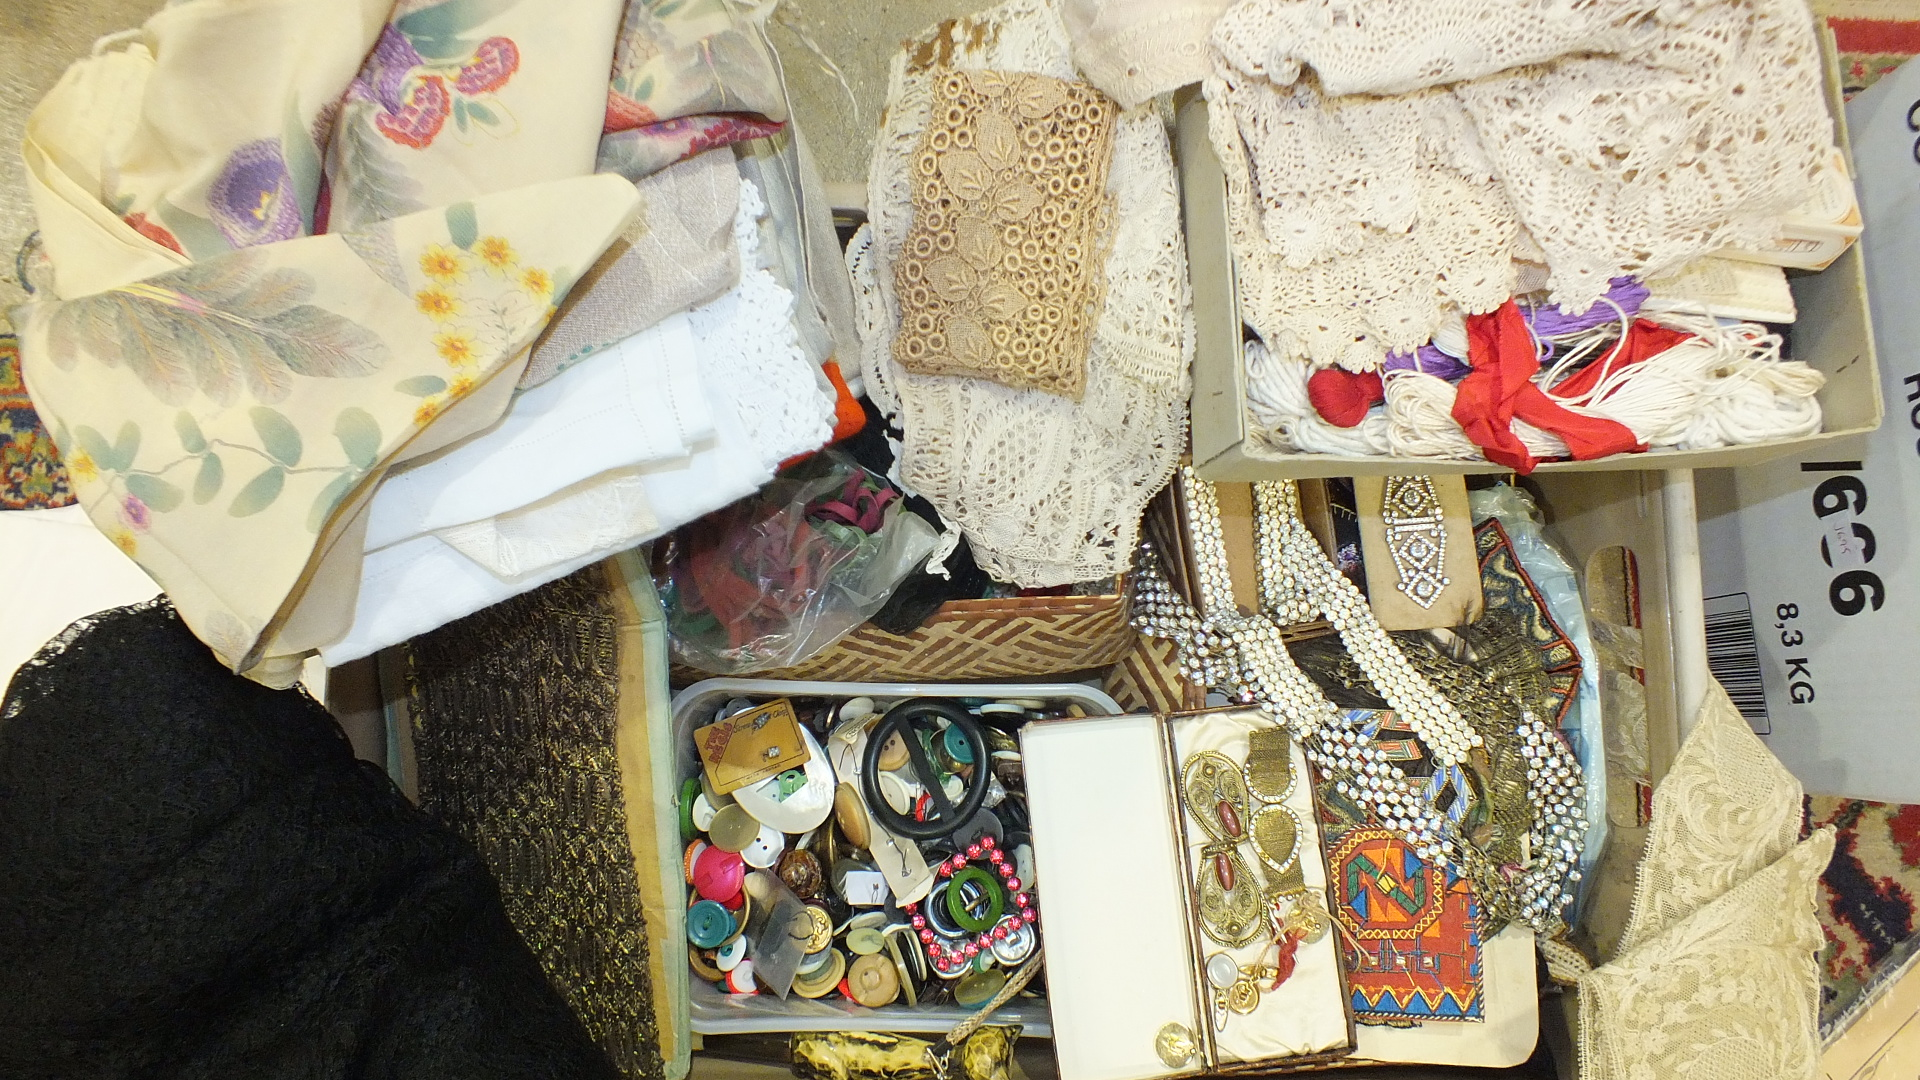 Lot 495 - A quantity of haberdashery, including lace, appliqué patches, buttons, paste buckles and